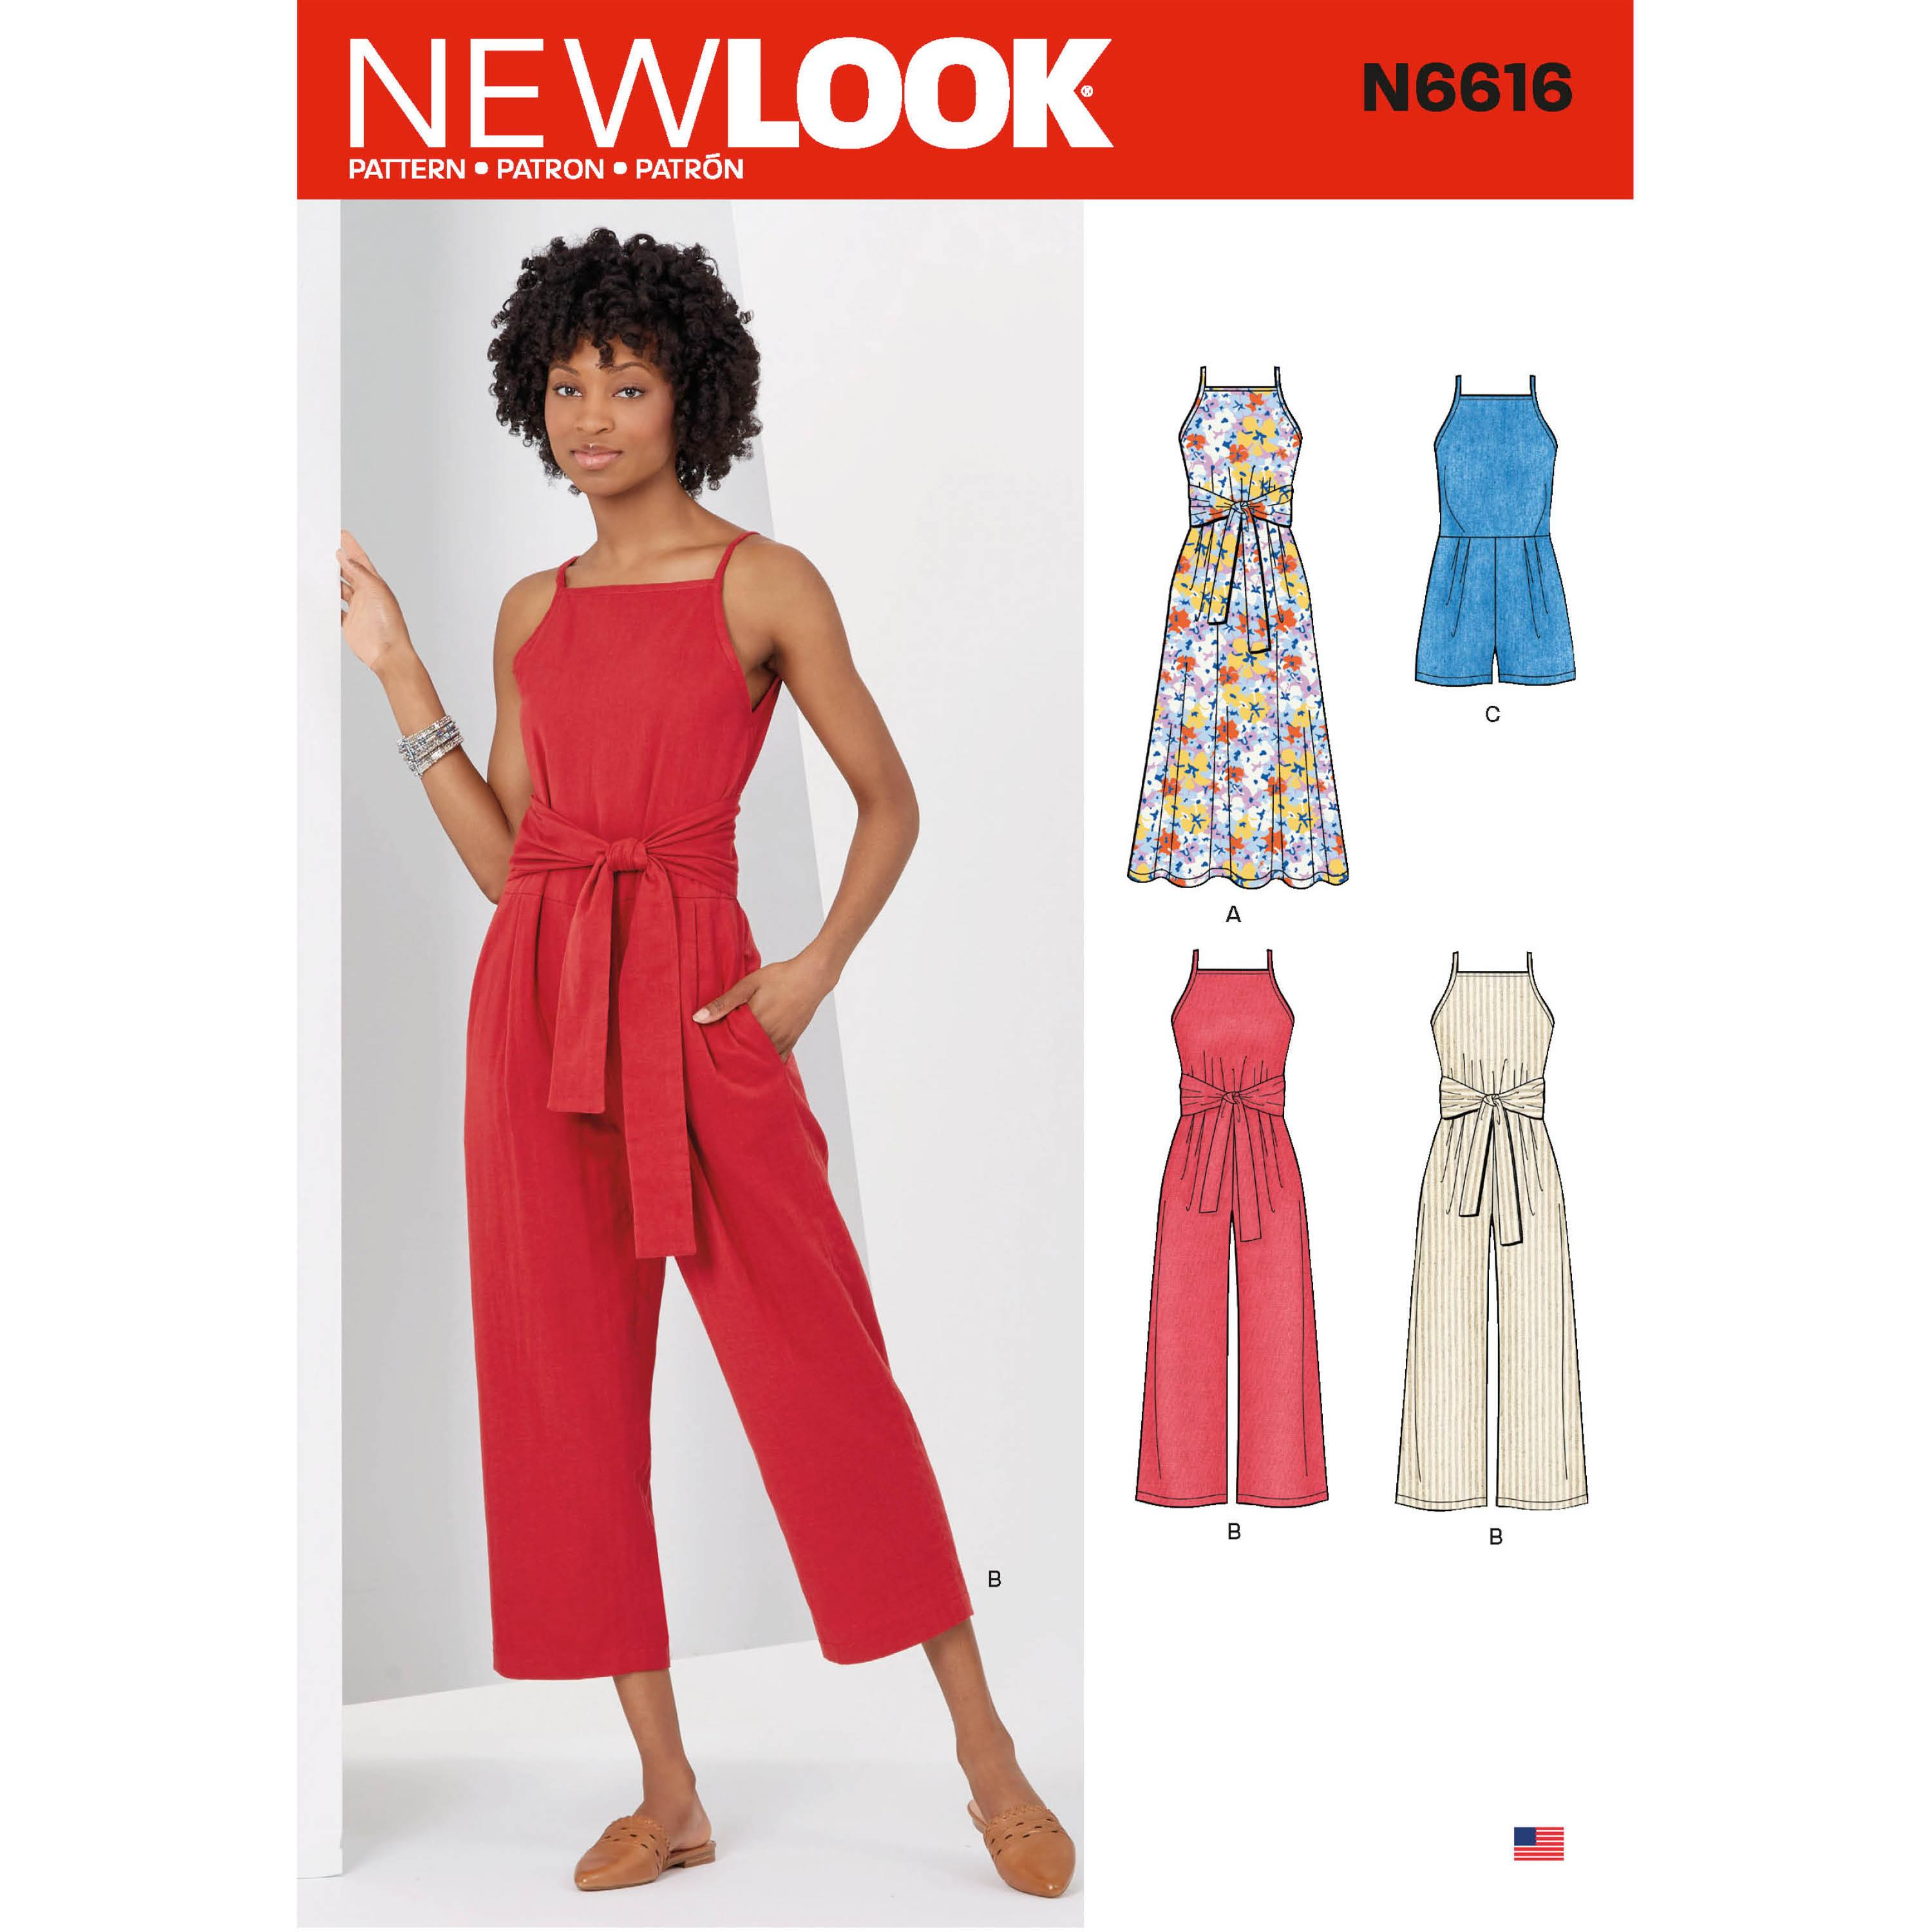 NewLook Sewing Pattern N6616 Misses' Dress And Jumpsuit